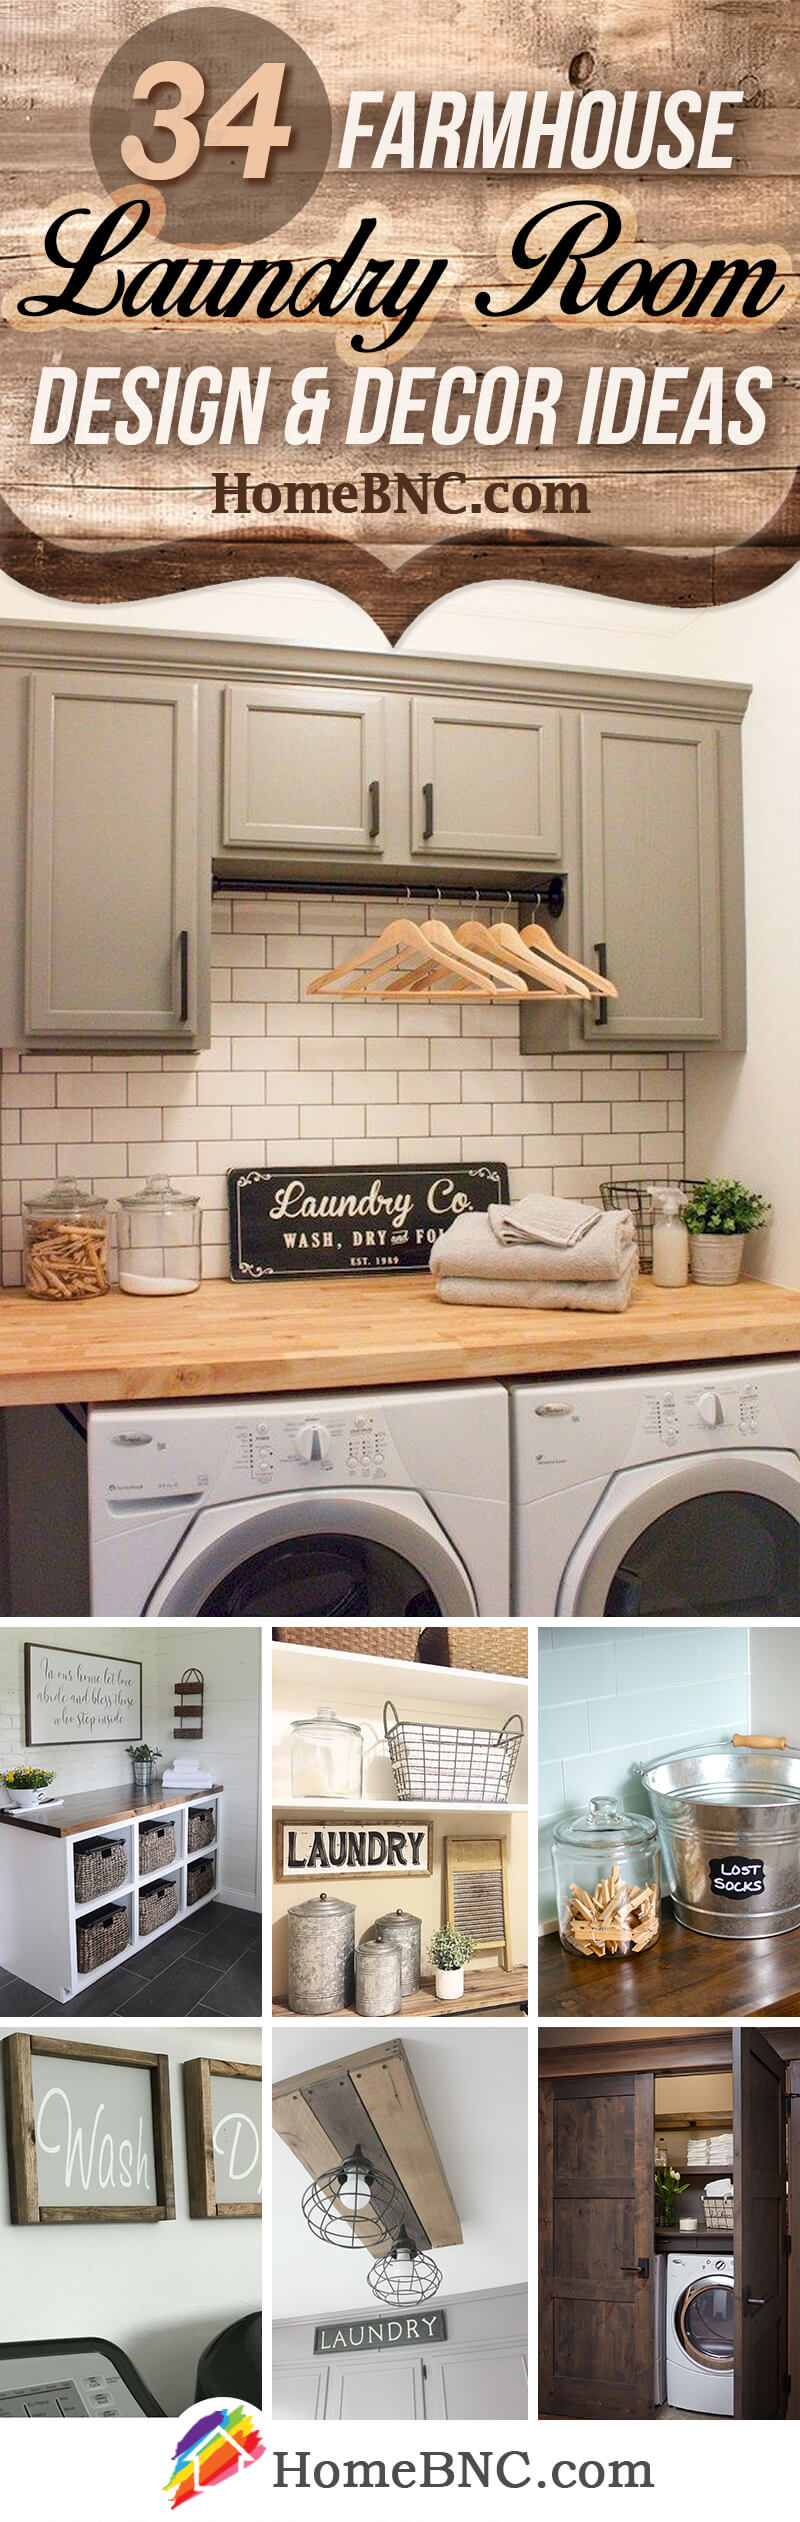 34 Best Farmhouse Laundry Room Decor Ideas and Designs for ... on Laundry Room Decor Ideas  id=74346